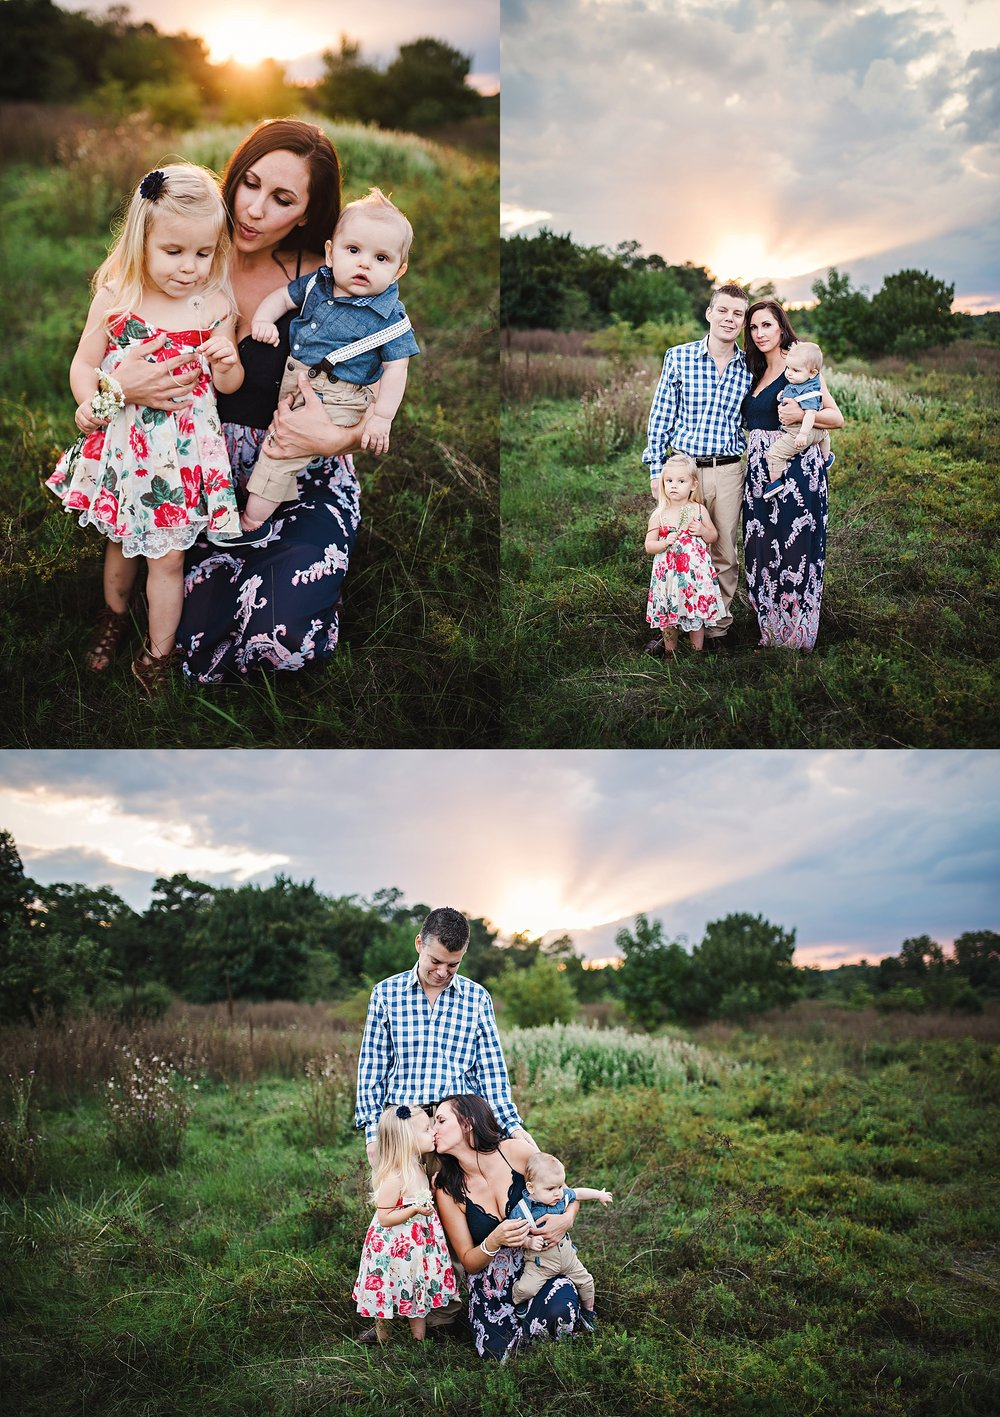 loudoun-county-family-photographer-18.jpg